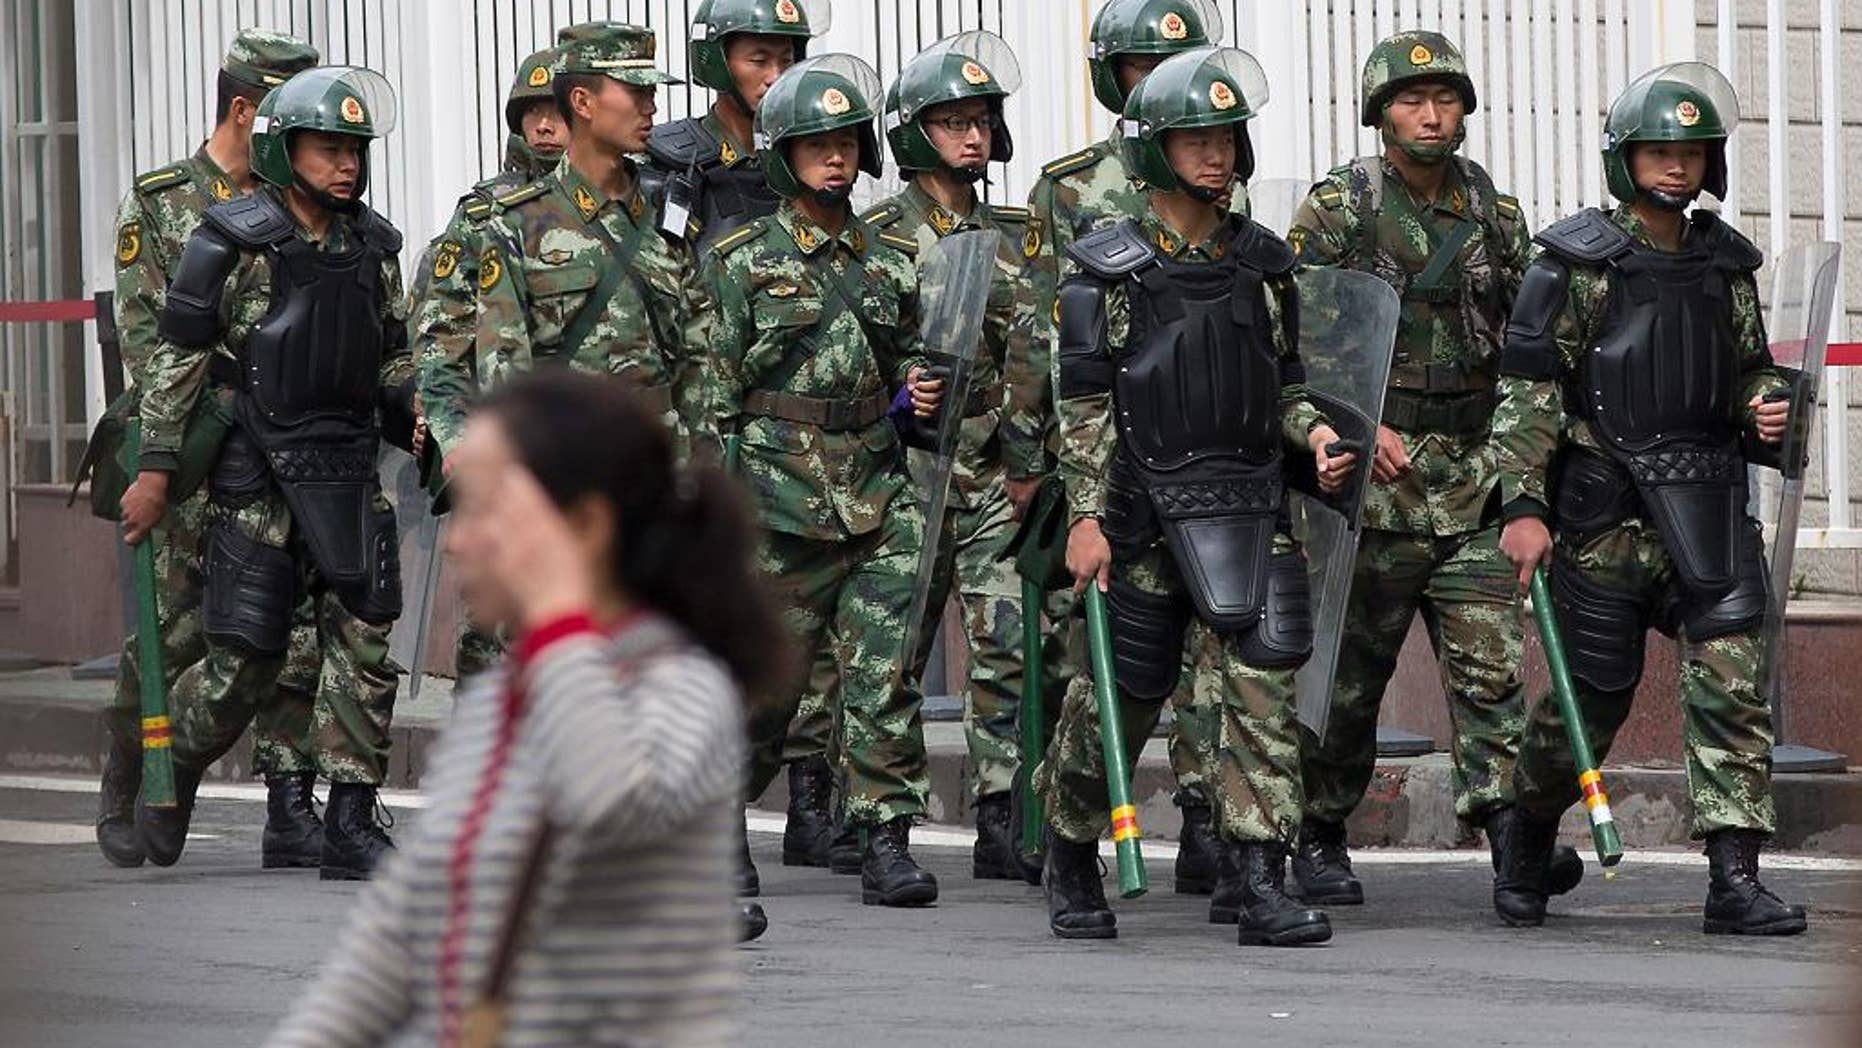 FILE - In this May 23, 2014 file photo, paramilitary policemen with shields and batons patrol near the People's Square in Urumqi, China's northwestern region of Xinjiang.  So far this month, police in China's restive western region of Xinjiang have broken up 23 terror and religious extremism groups and caught over 200 suspects, state media reported Monday, May 26. (AP Photo/Andy Wong, File)